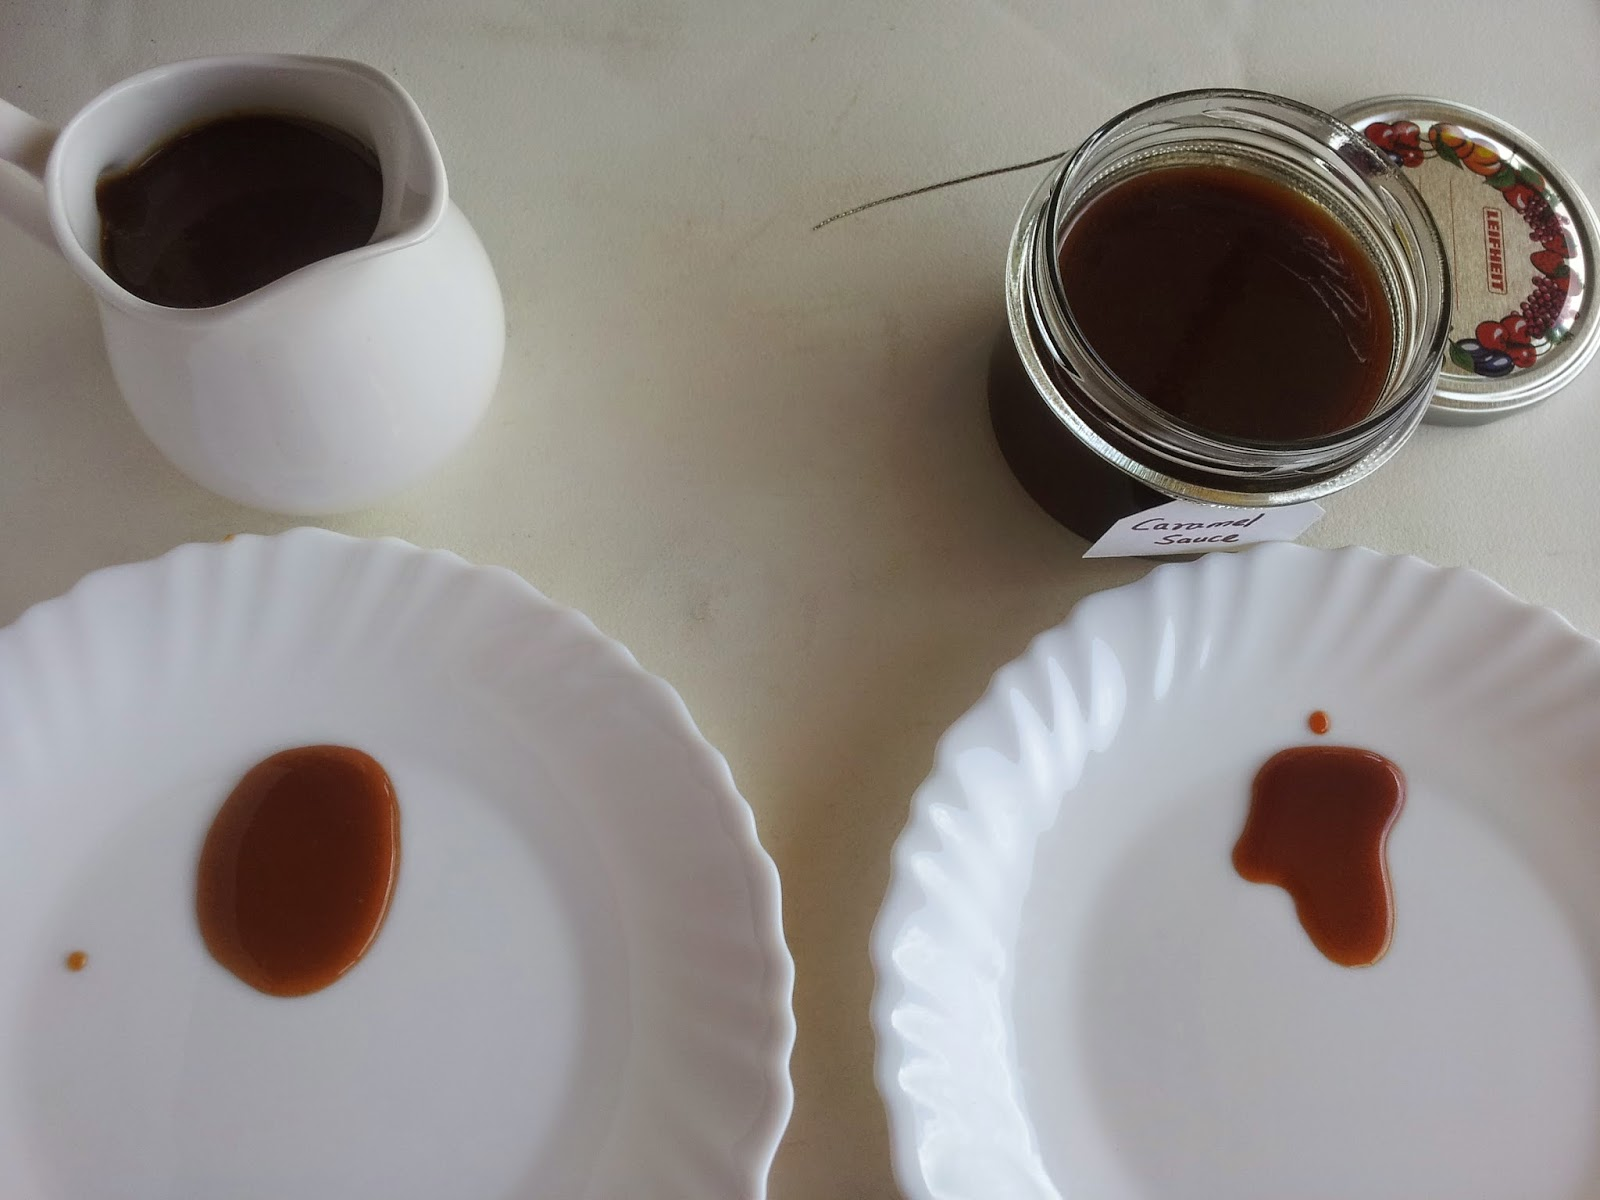 caramel sauce - colour comparison